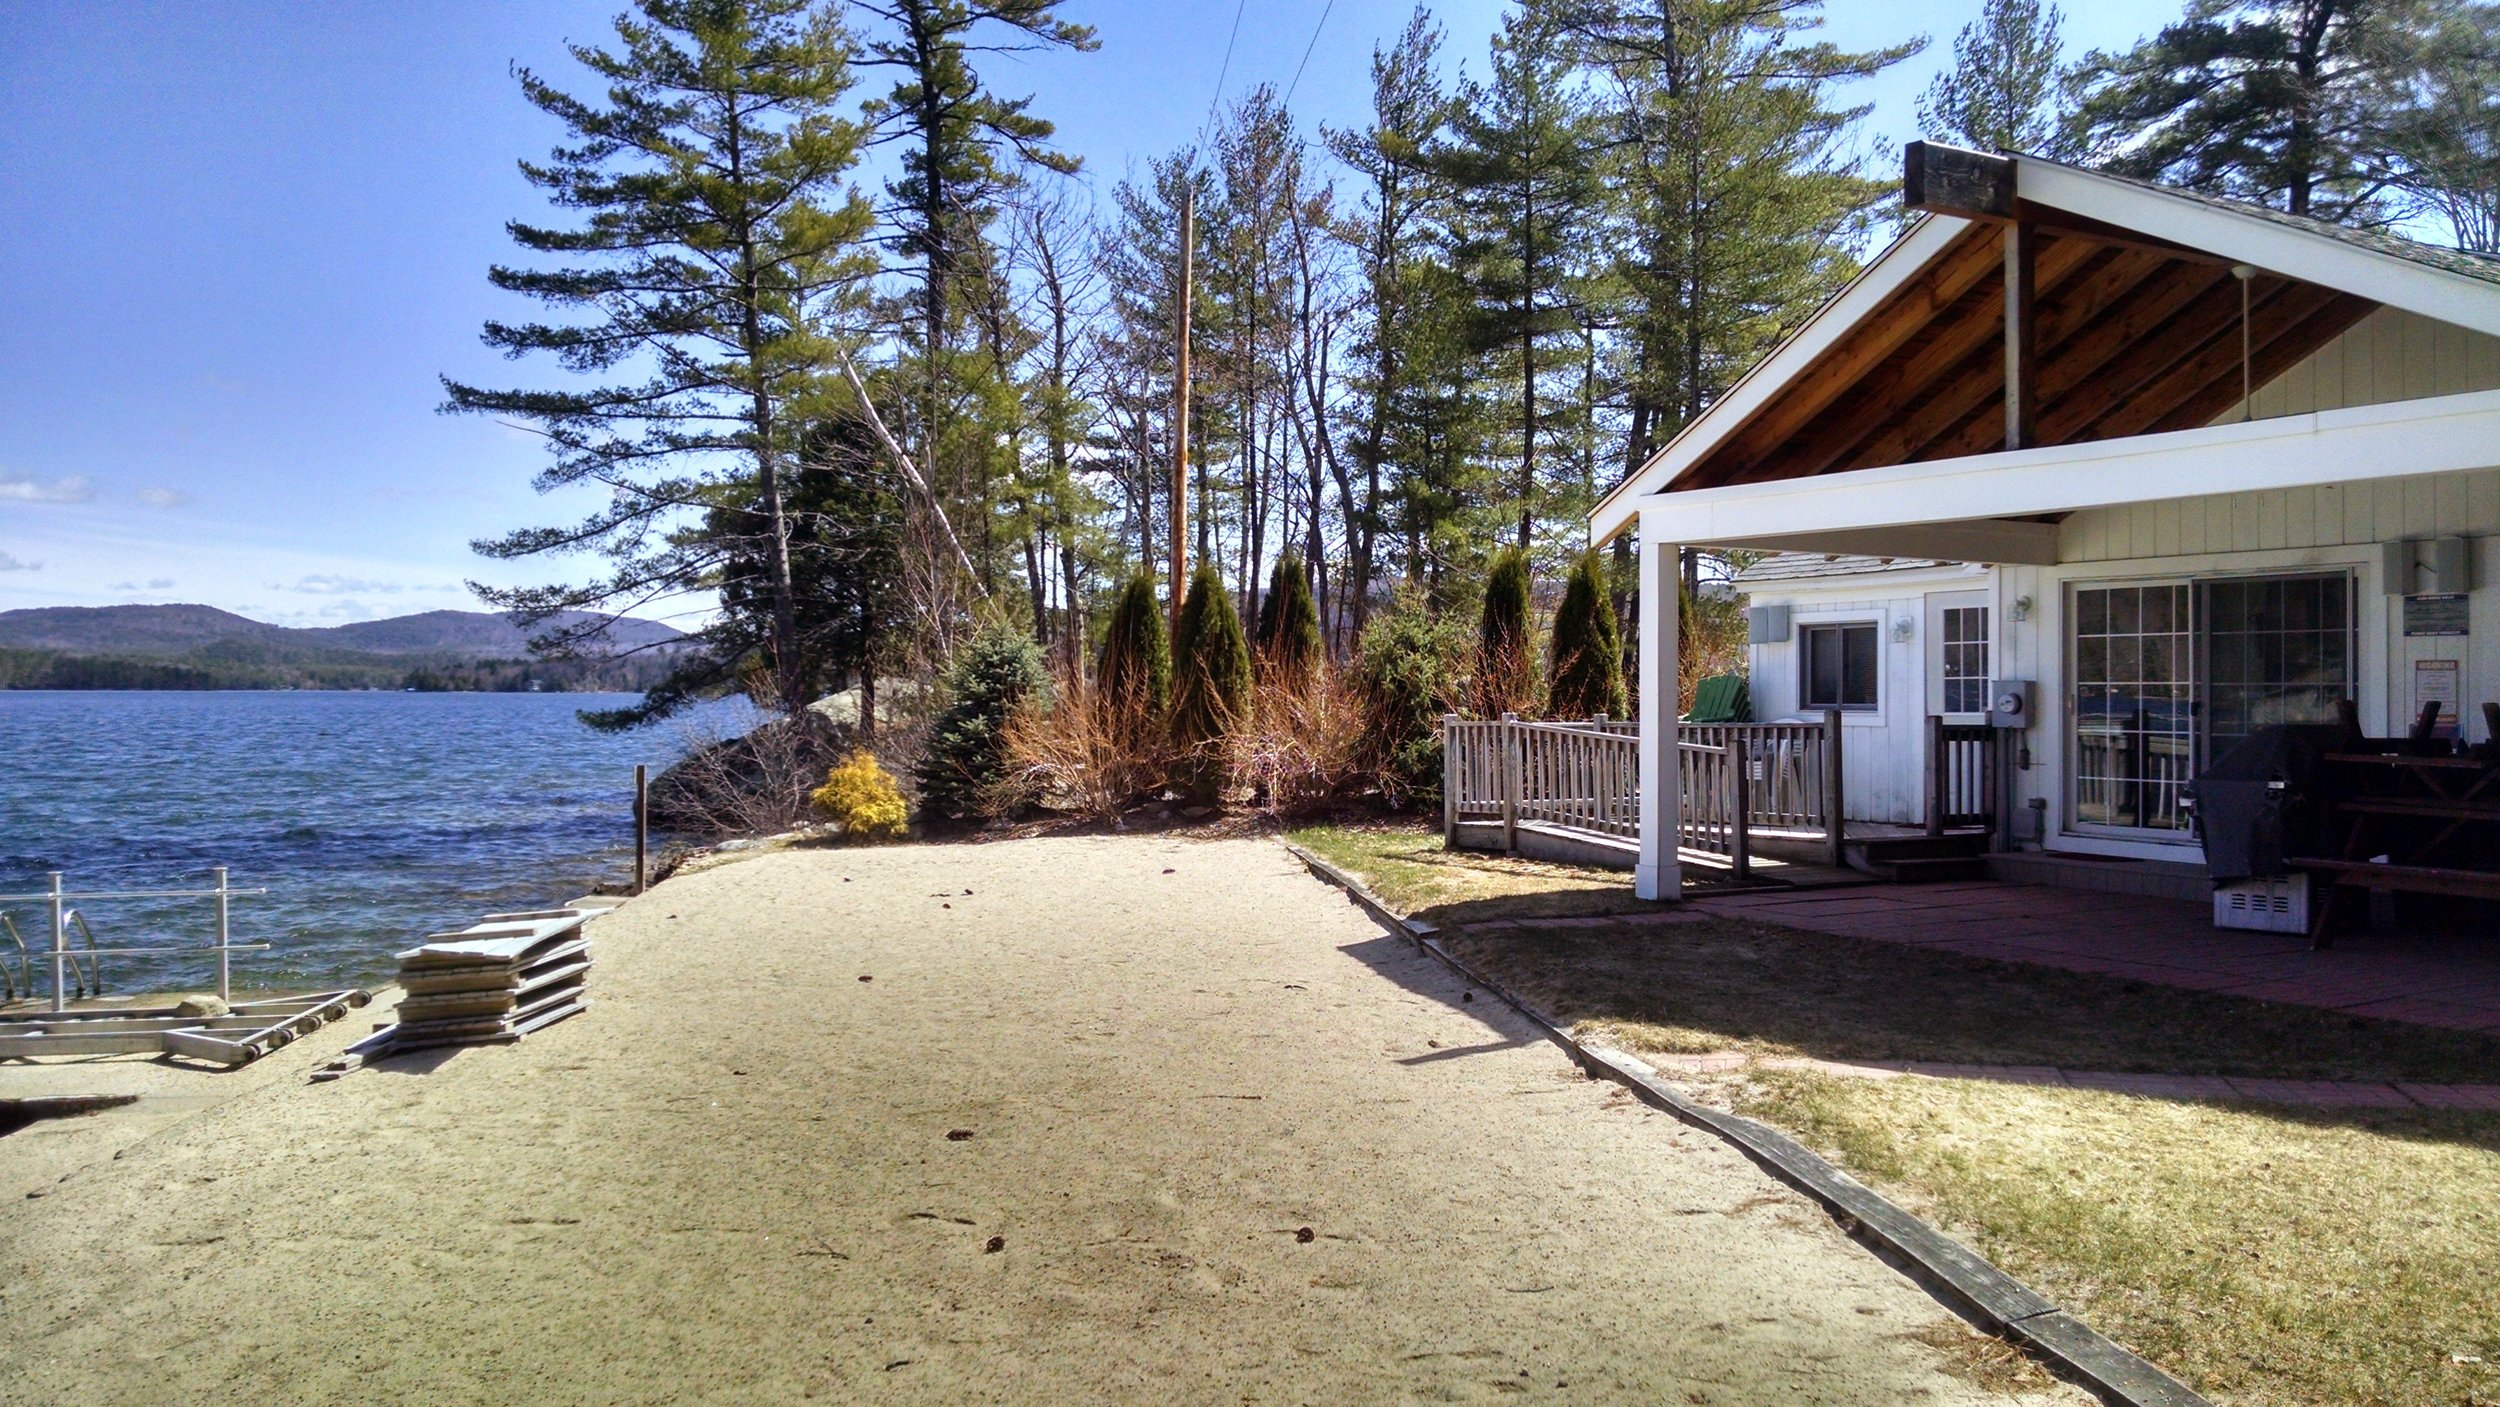 Our private beach, patio, and the lake!  It is almost time to put in the dock!